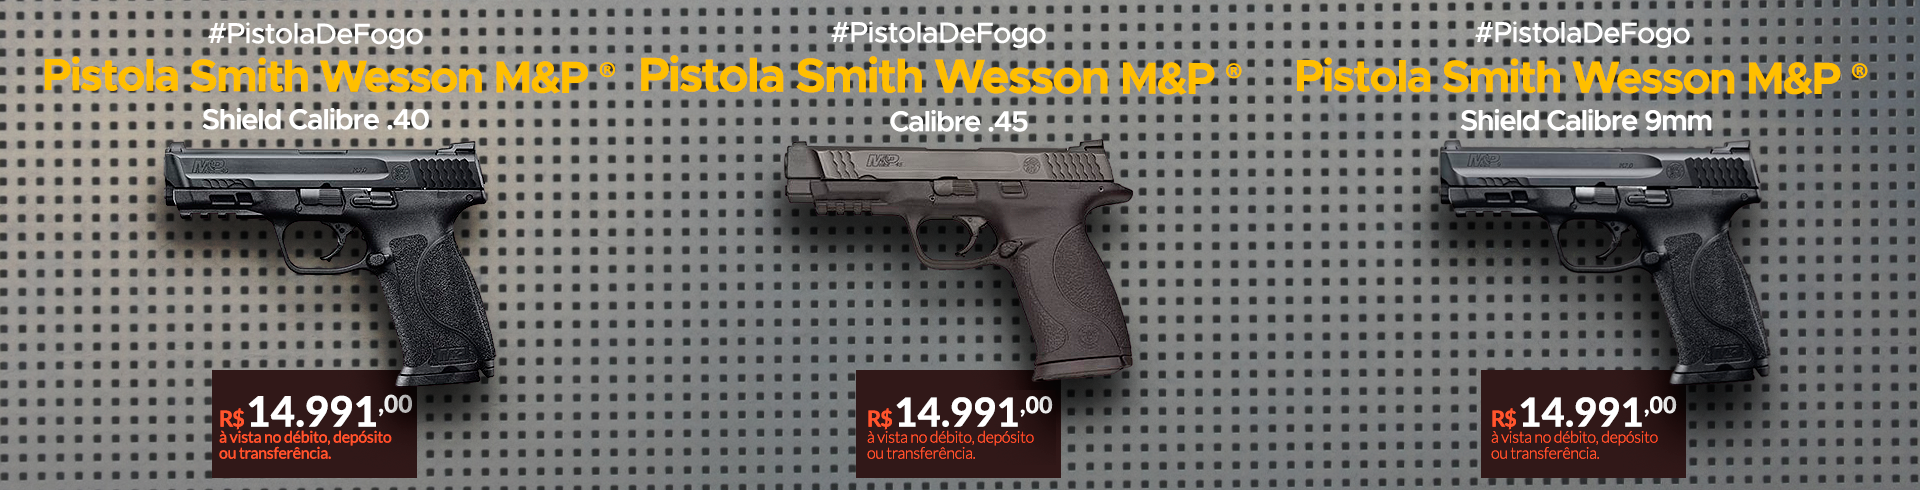 PISTOLA SMITH WESSON